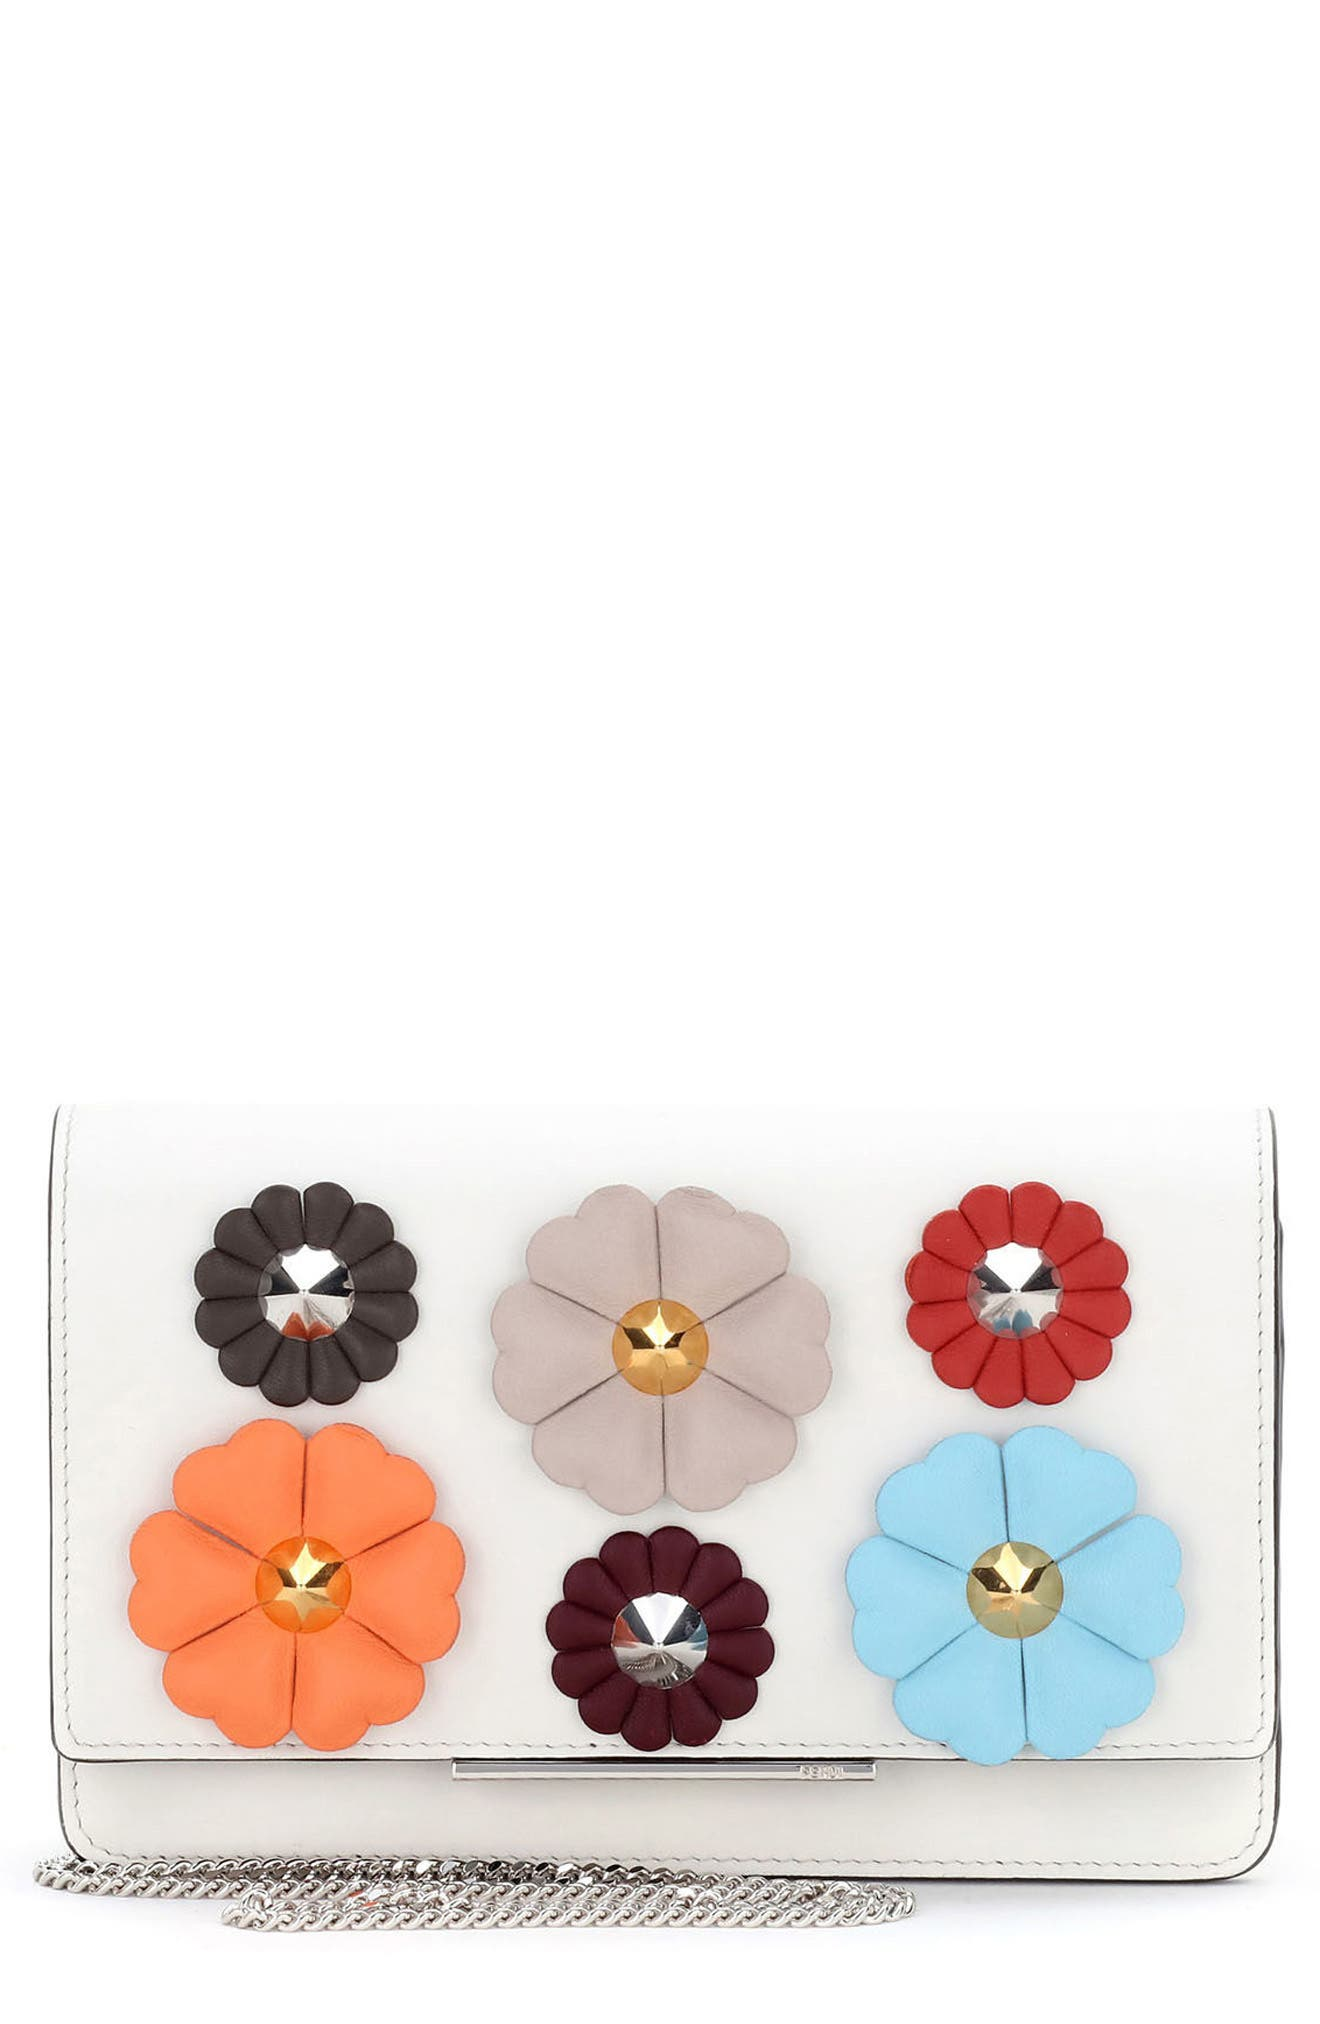 Alternate Image 1 Selected - Fendi Flowerland Leather Wallet on a Chain